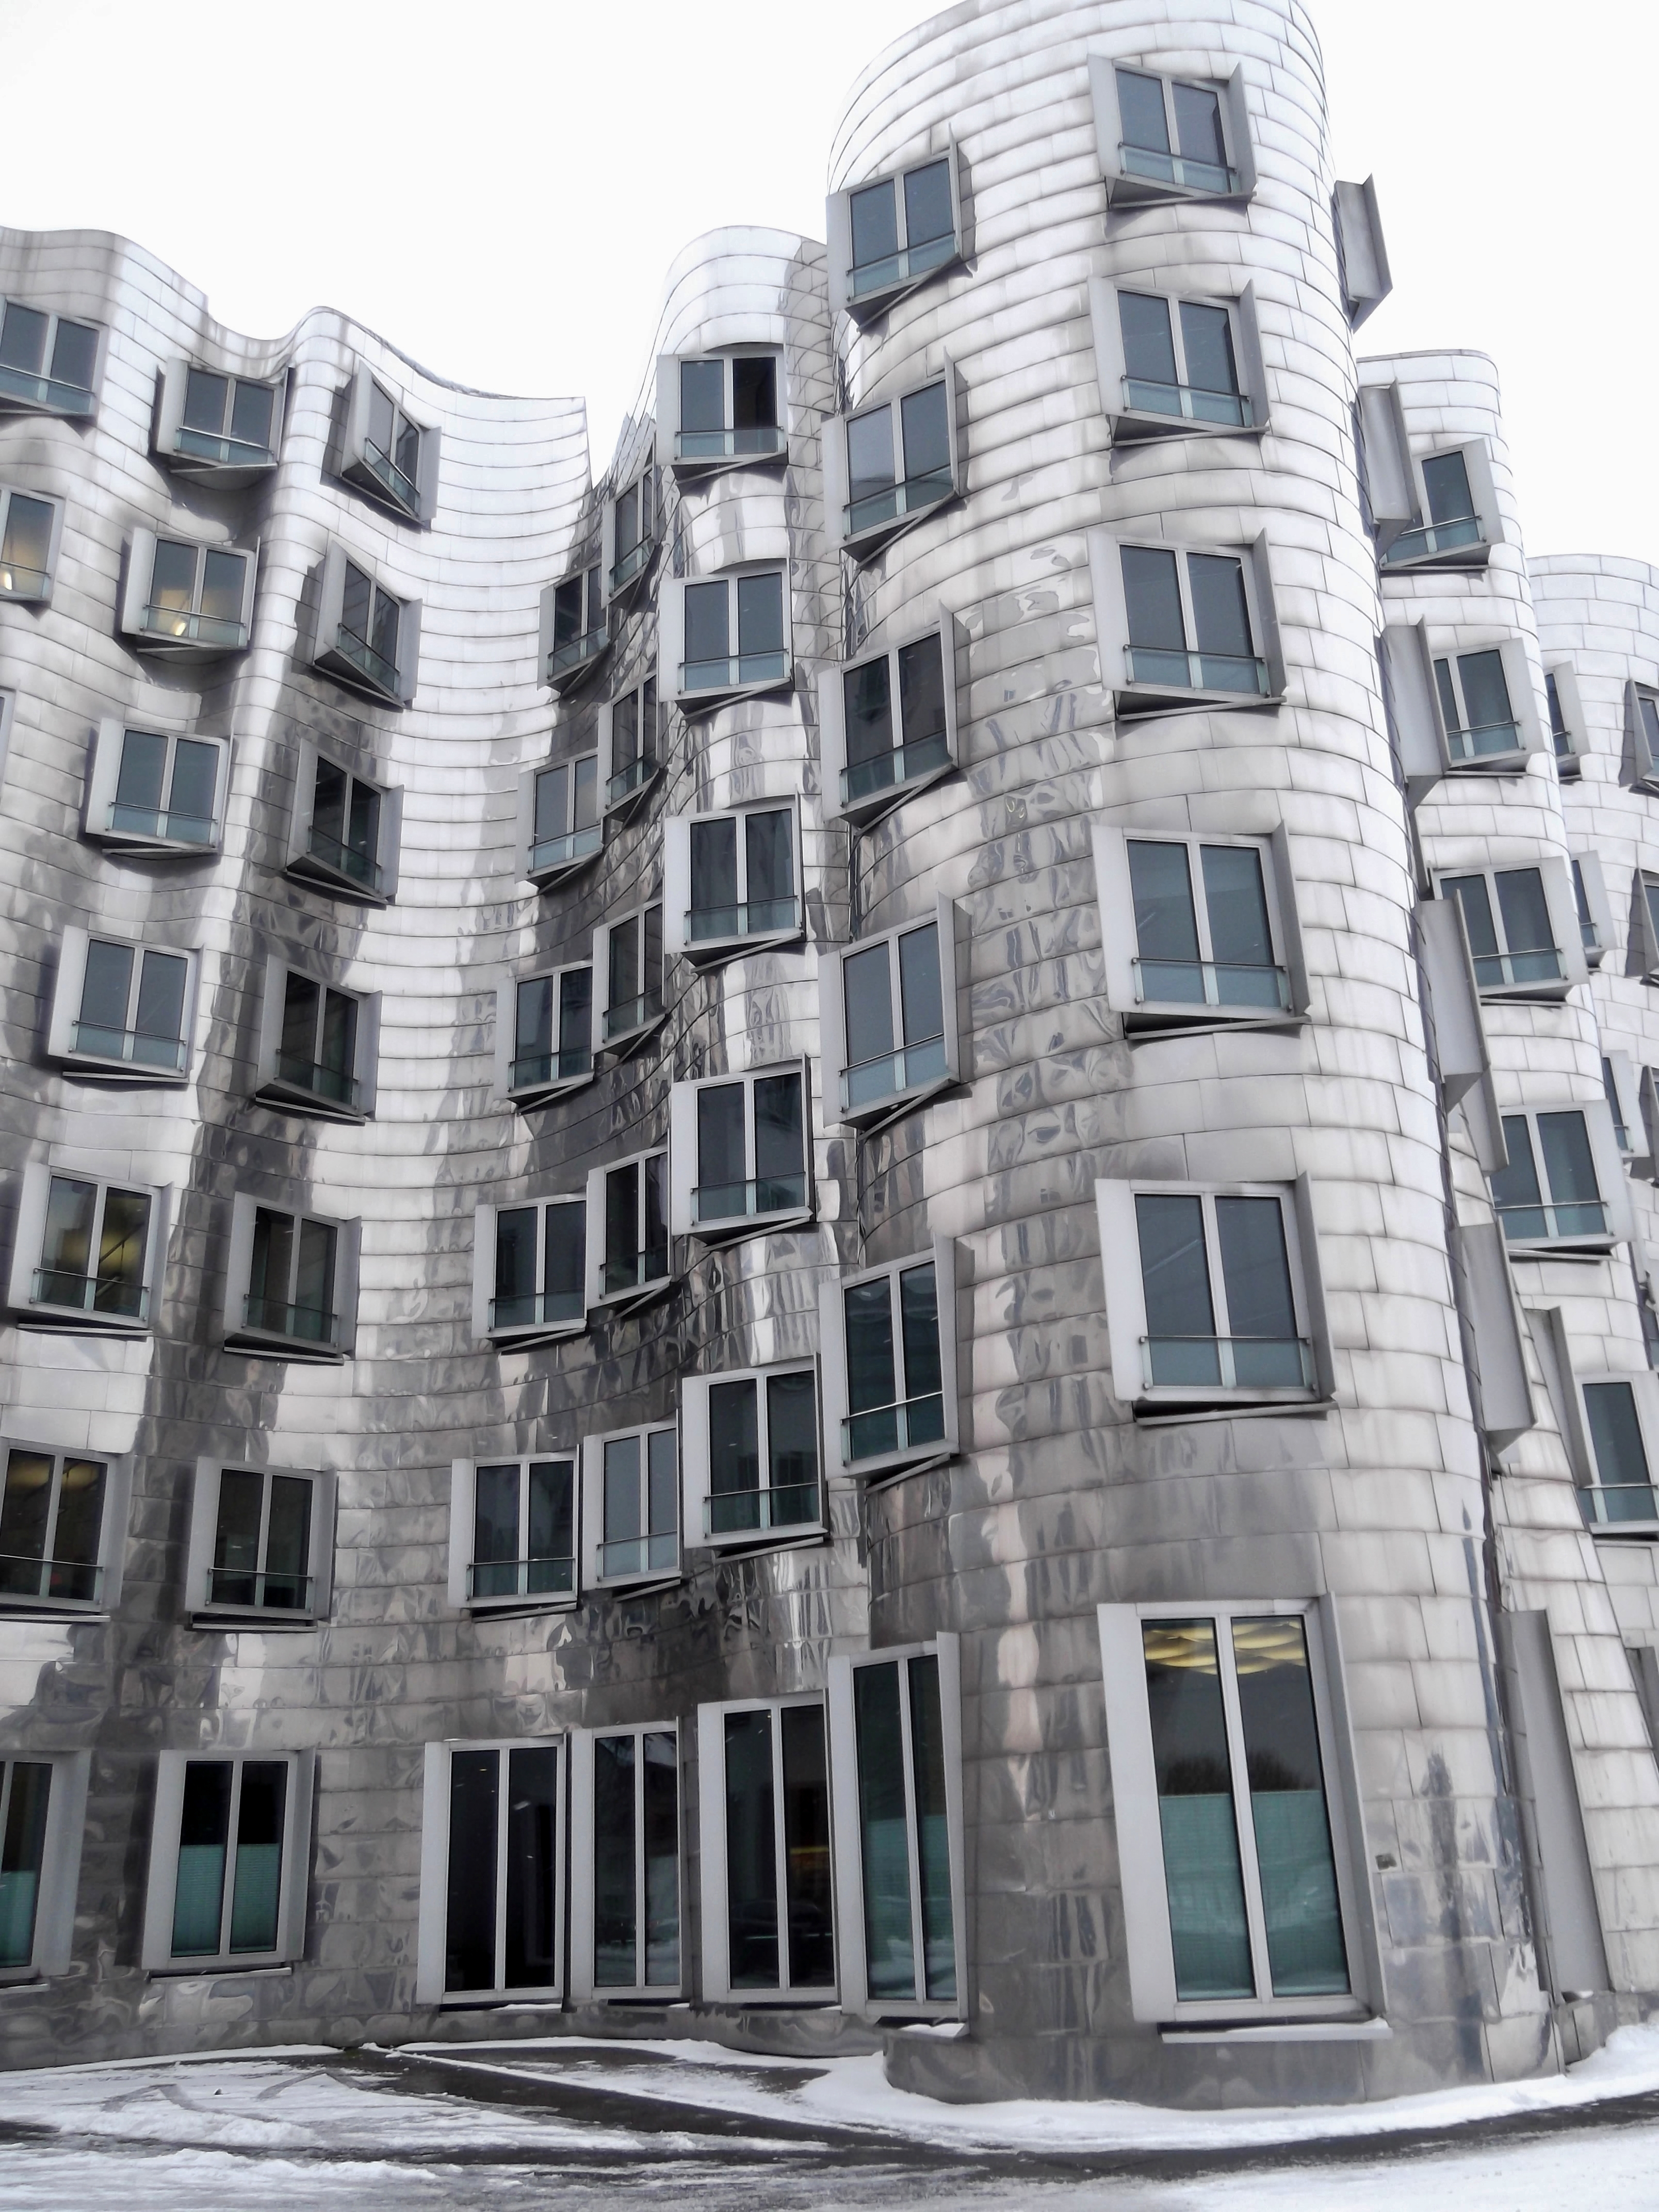 Frank O Gehry Architecture In D 252 Sseldorf Germany